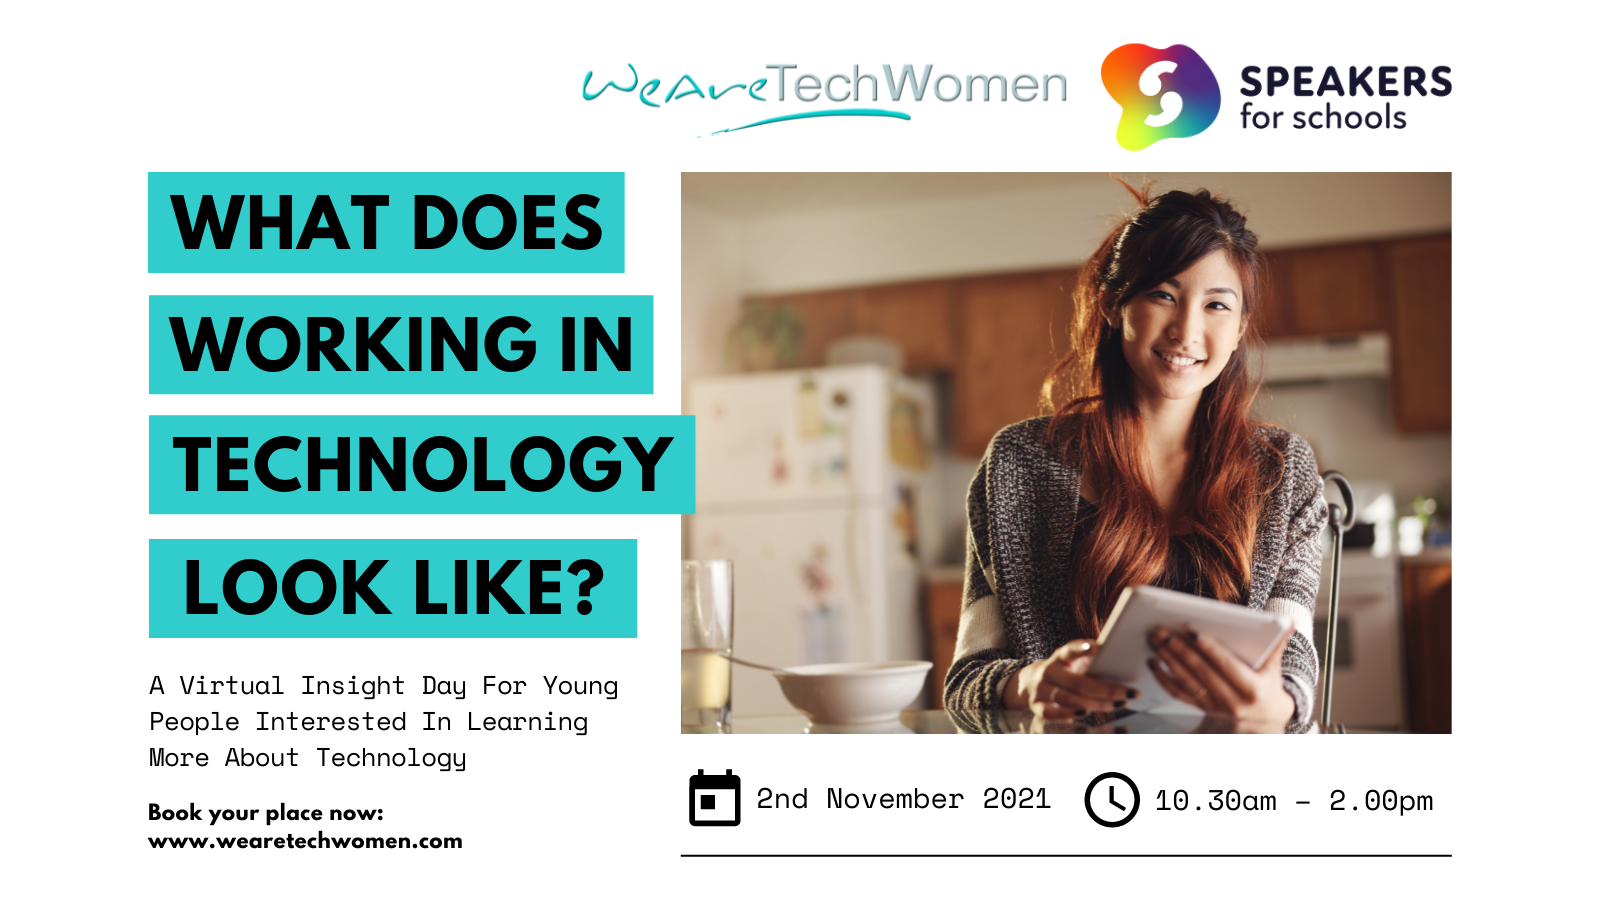 What does working in Technology look like? WeAreTechWomen & Speakers for Schools event image